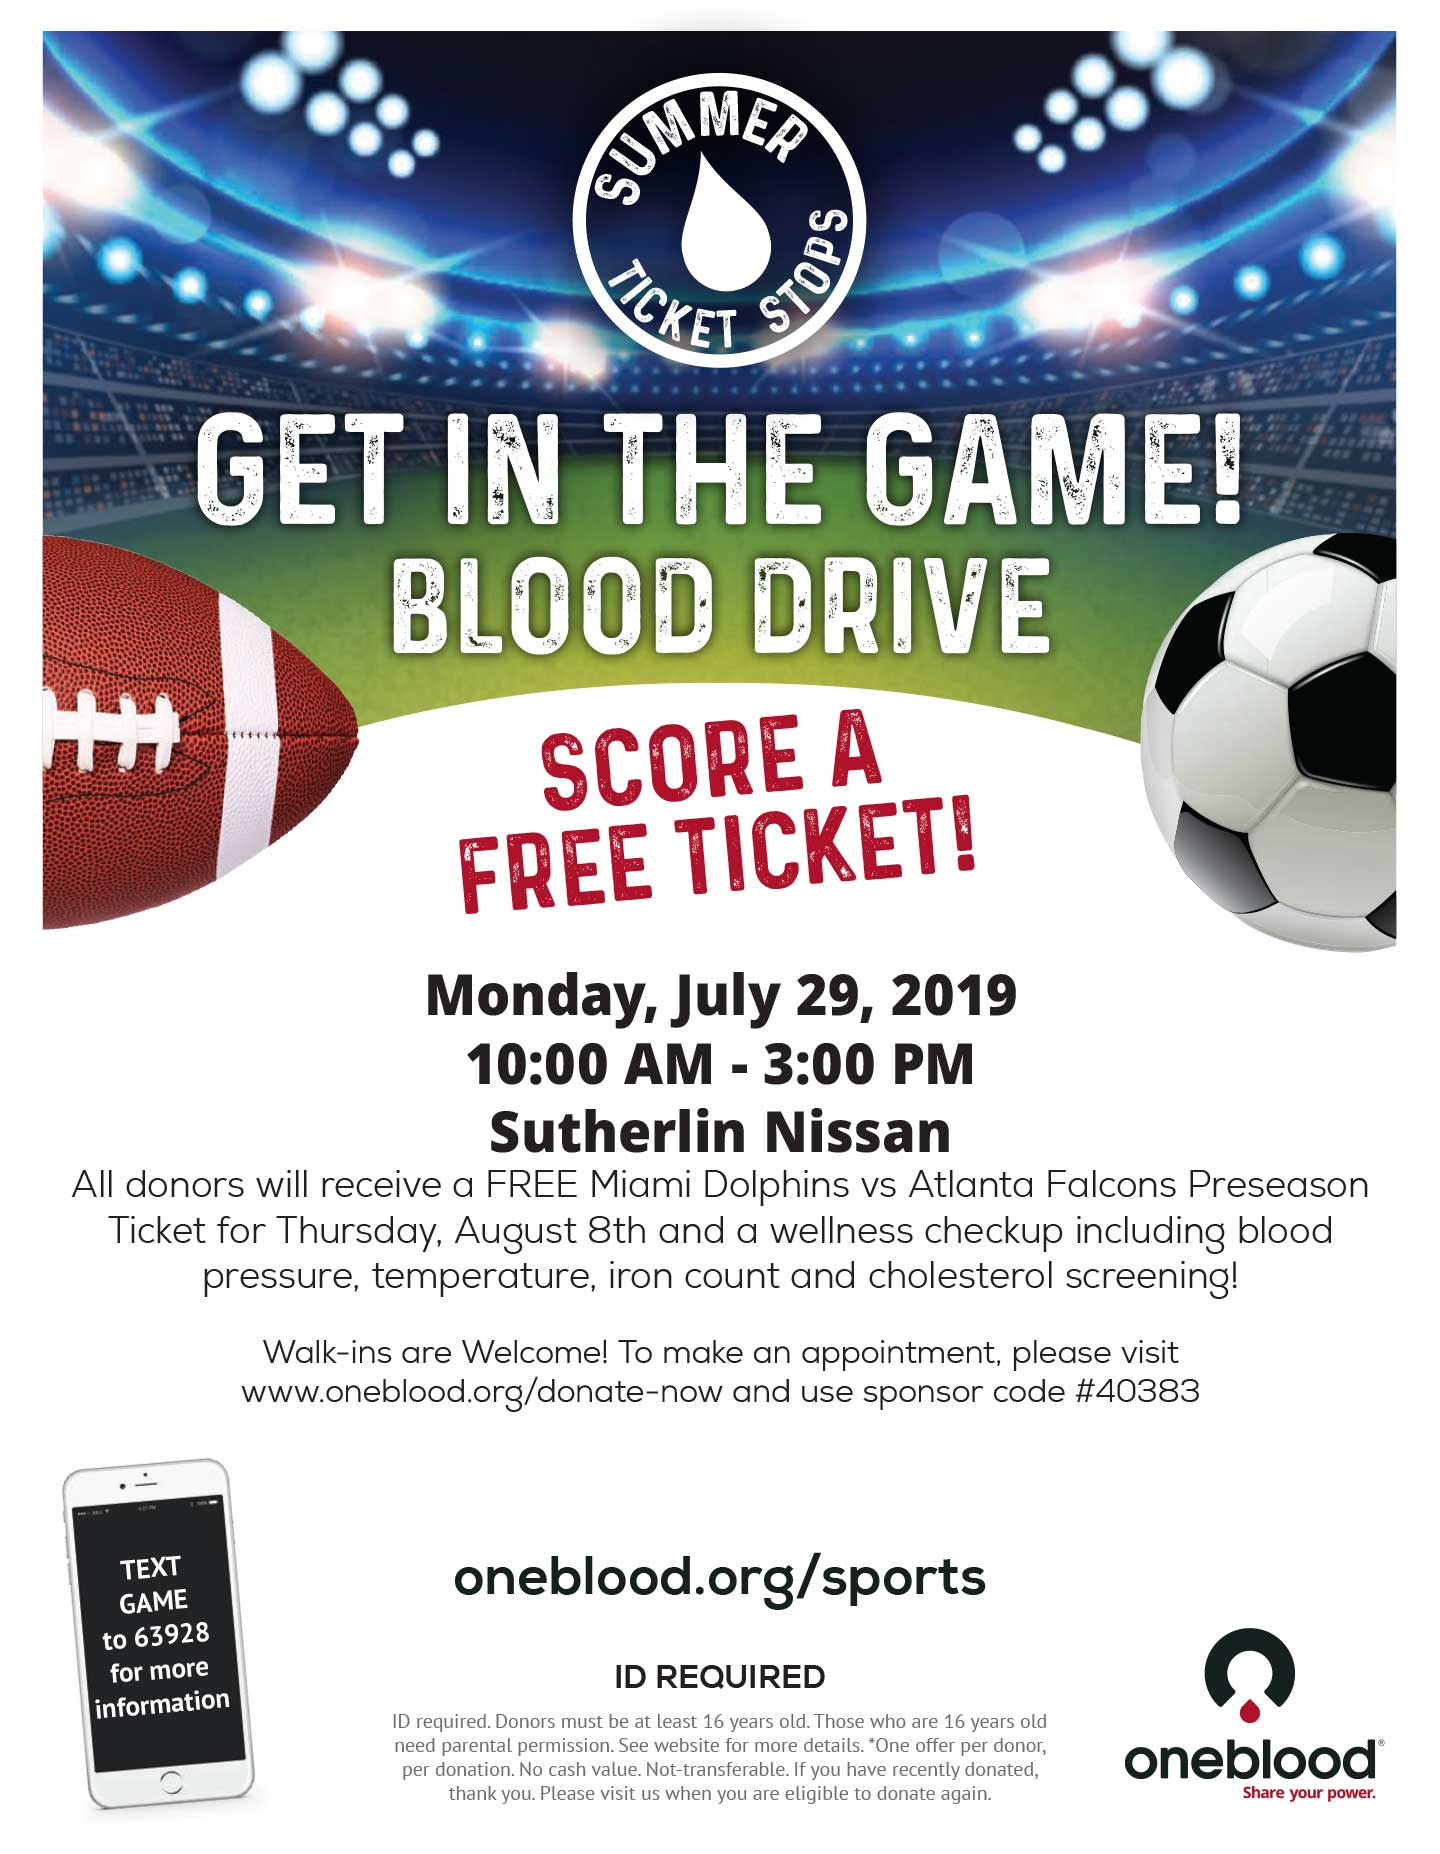 Get in the Game Blood Drive